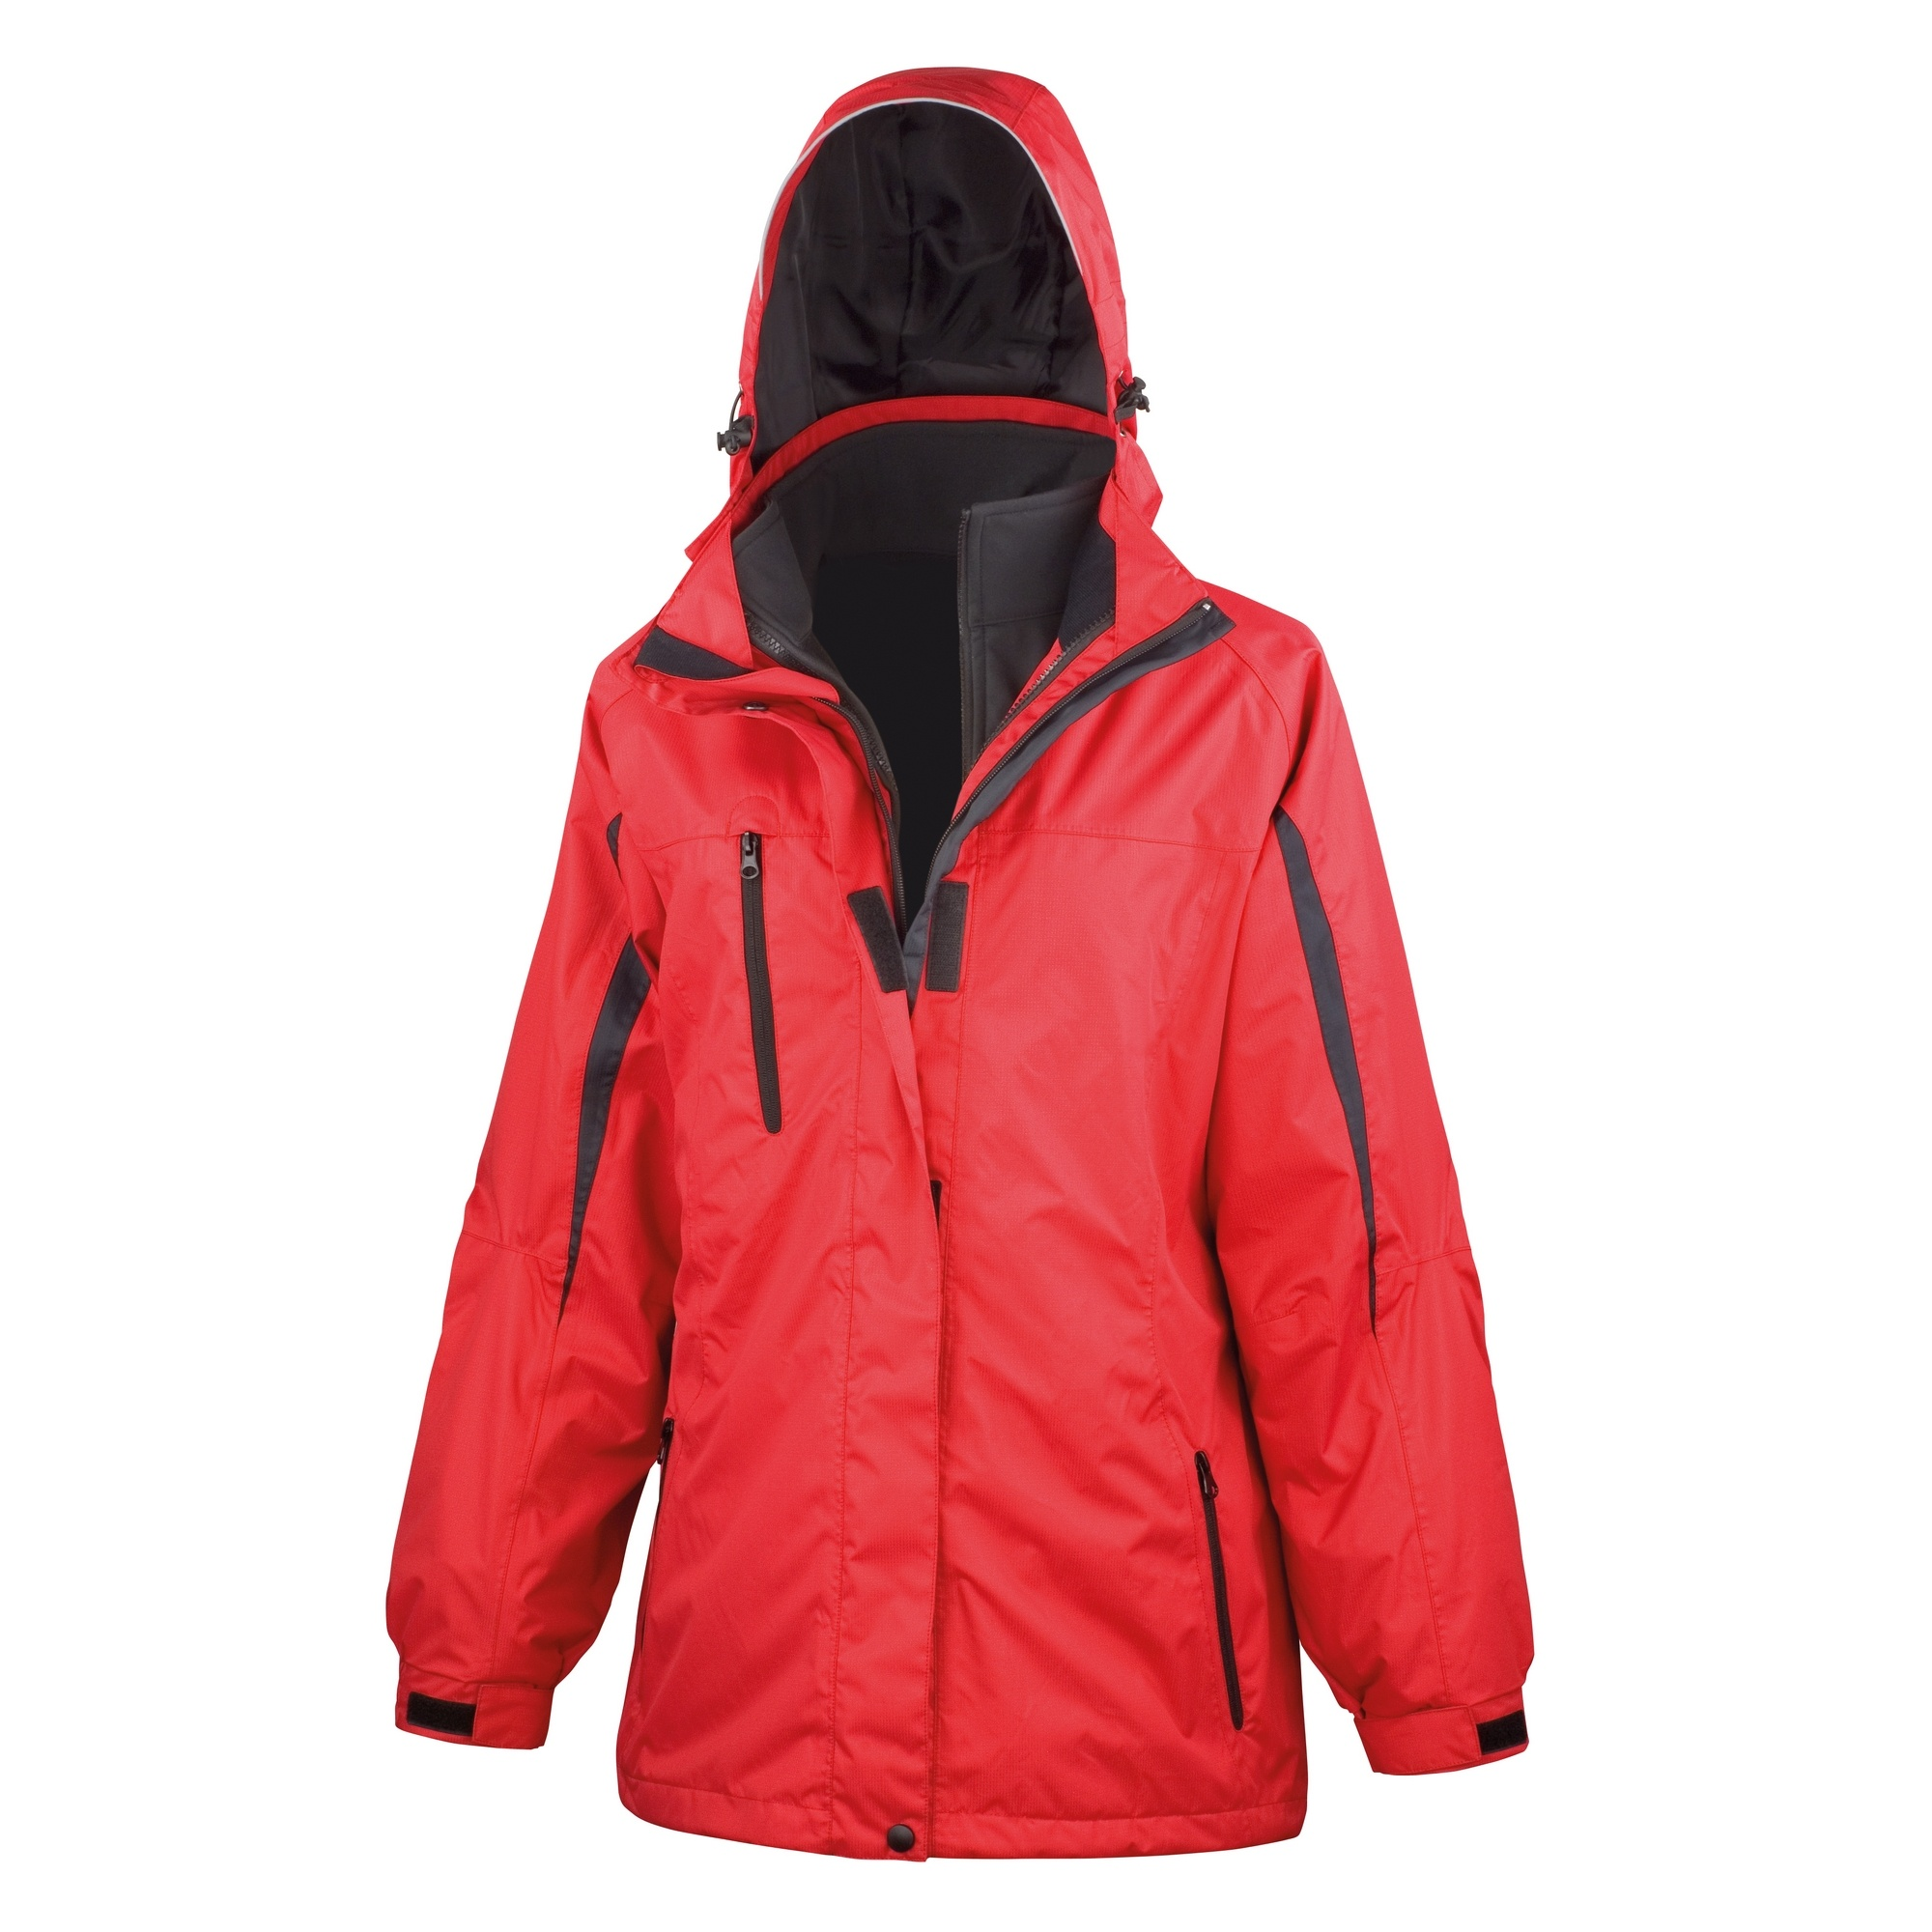 Result Womens/Ladies 3 In 1 Softshell Journey Jacket With Hood (S) (Red / Black)